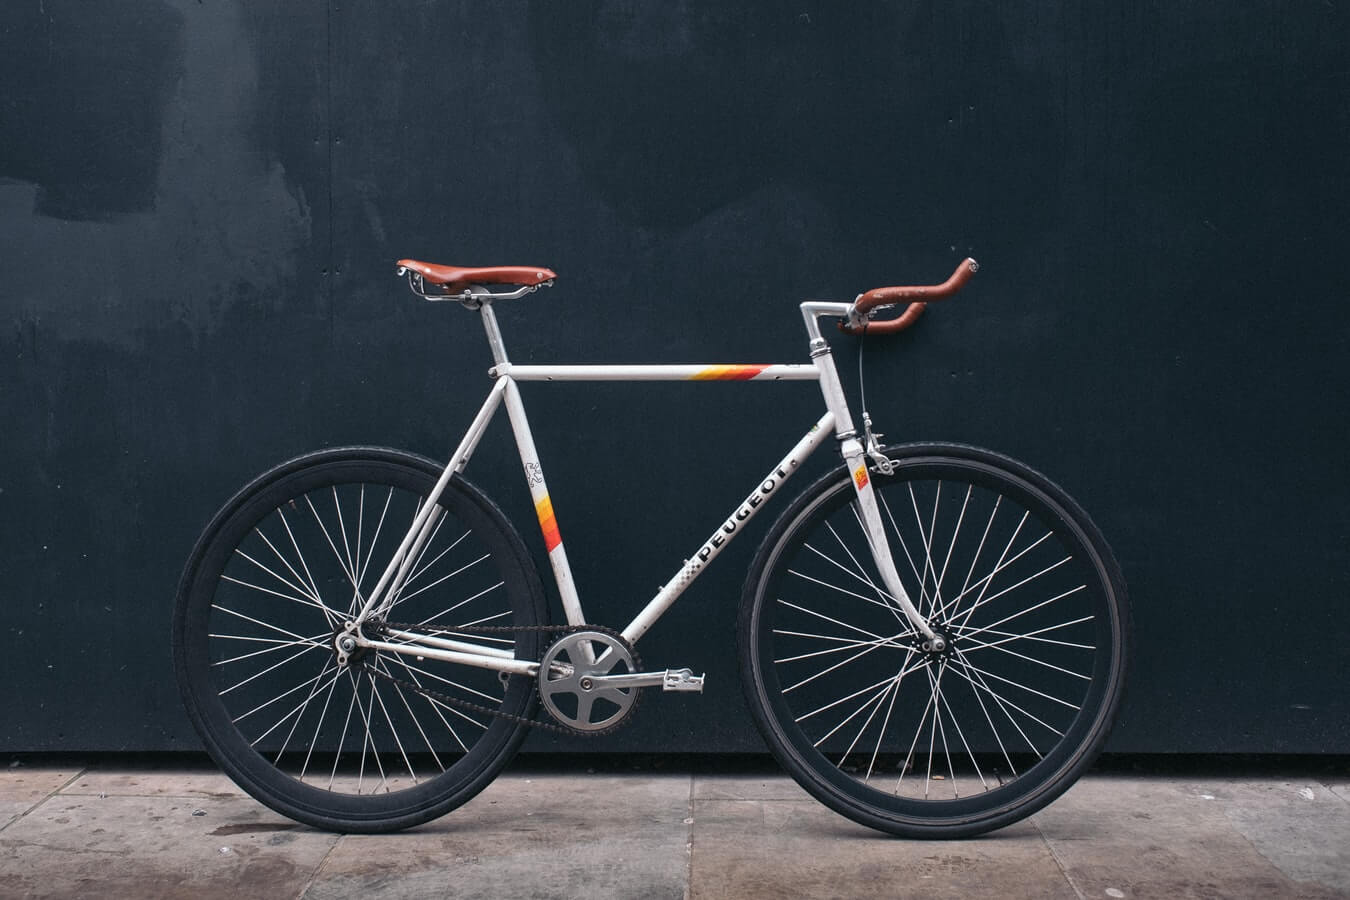 a bicycle against a black wall